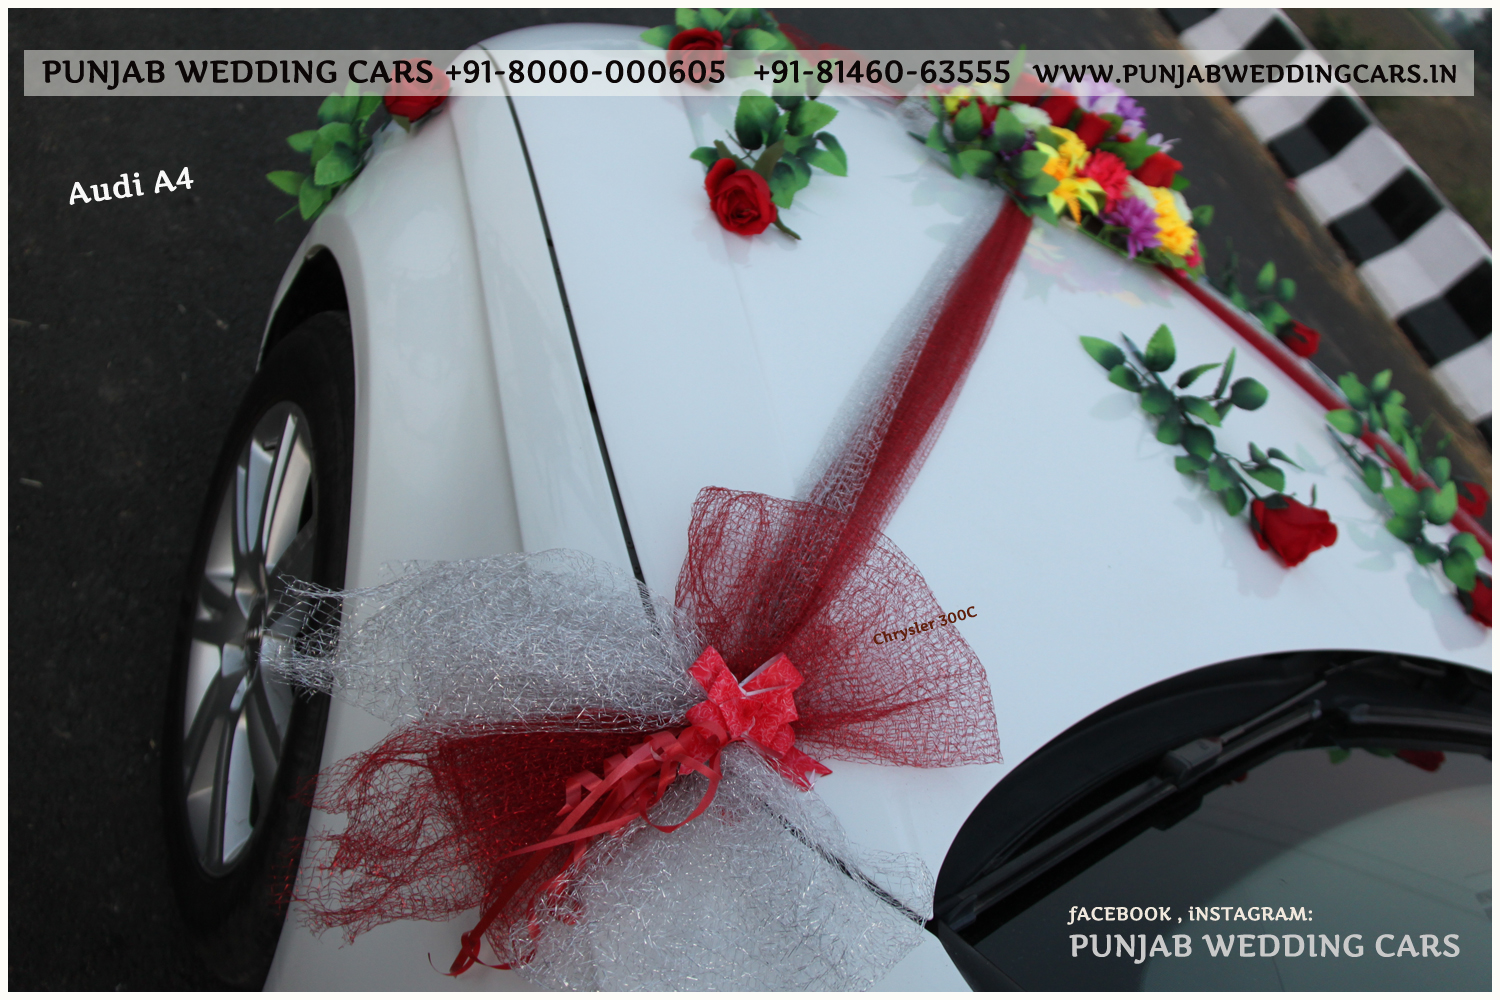 Wedding cars audi audi punjab wedding cars wedding cars audi available in chandigarh jalandhar ludhiana amritsar barnala junglespirit Choice Image